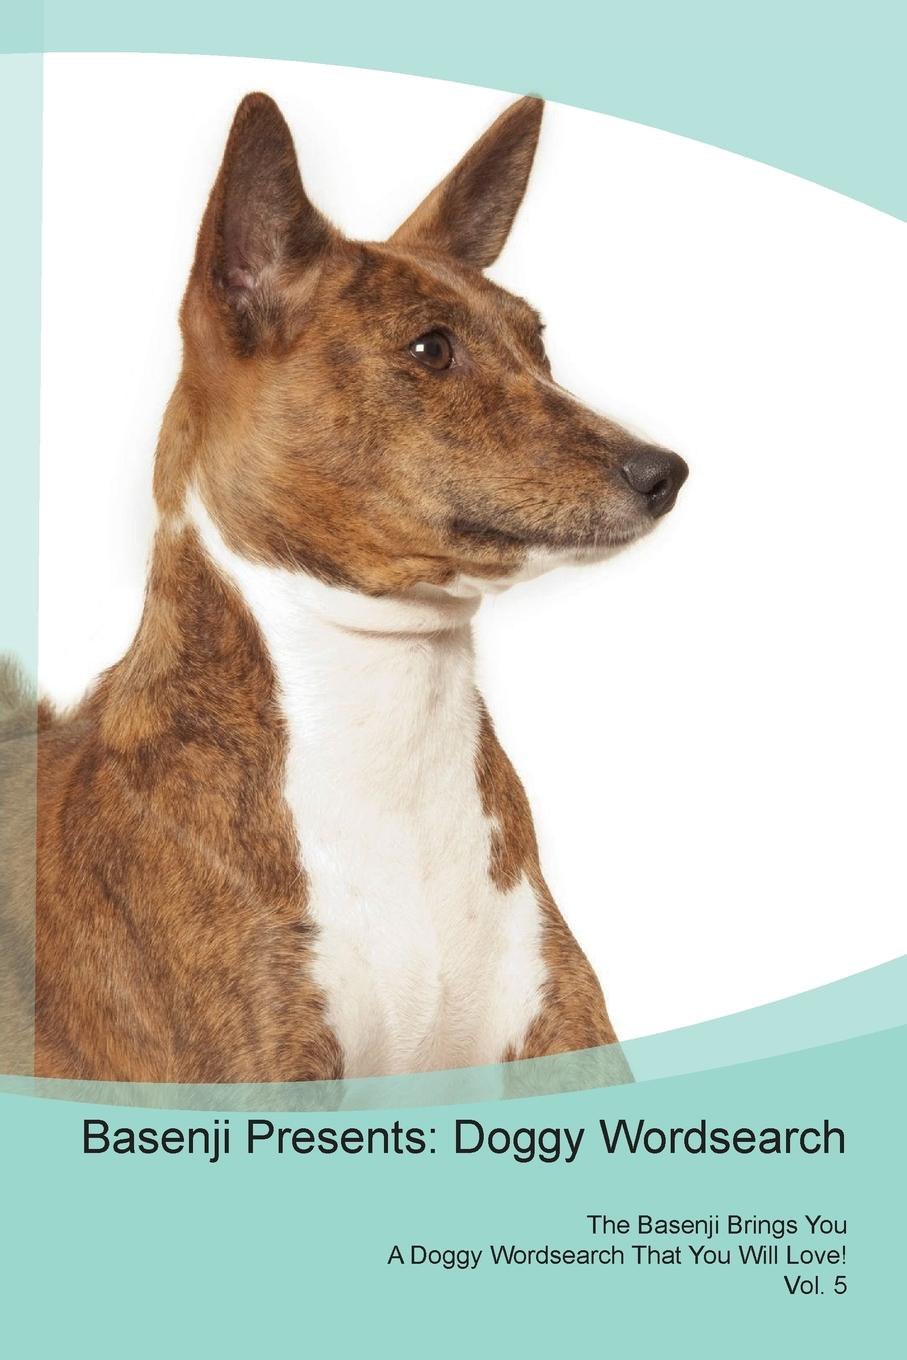 Doggy Puzzles Basenji Presents. Wordsearch The Brings You A That Will Love! Vol. 5